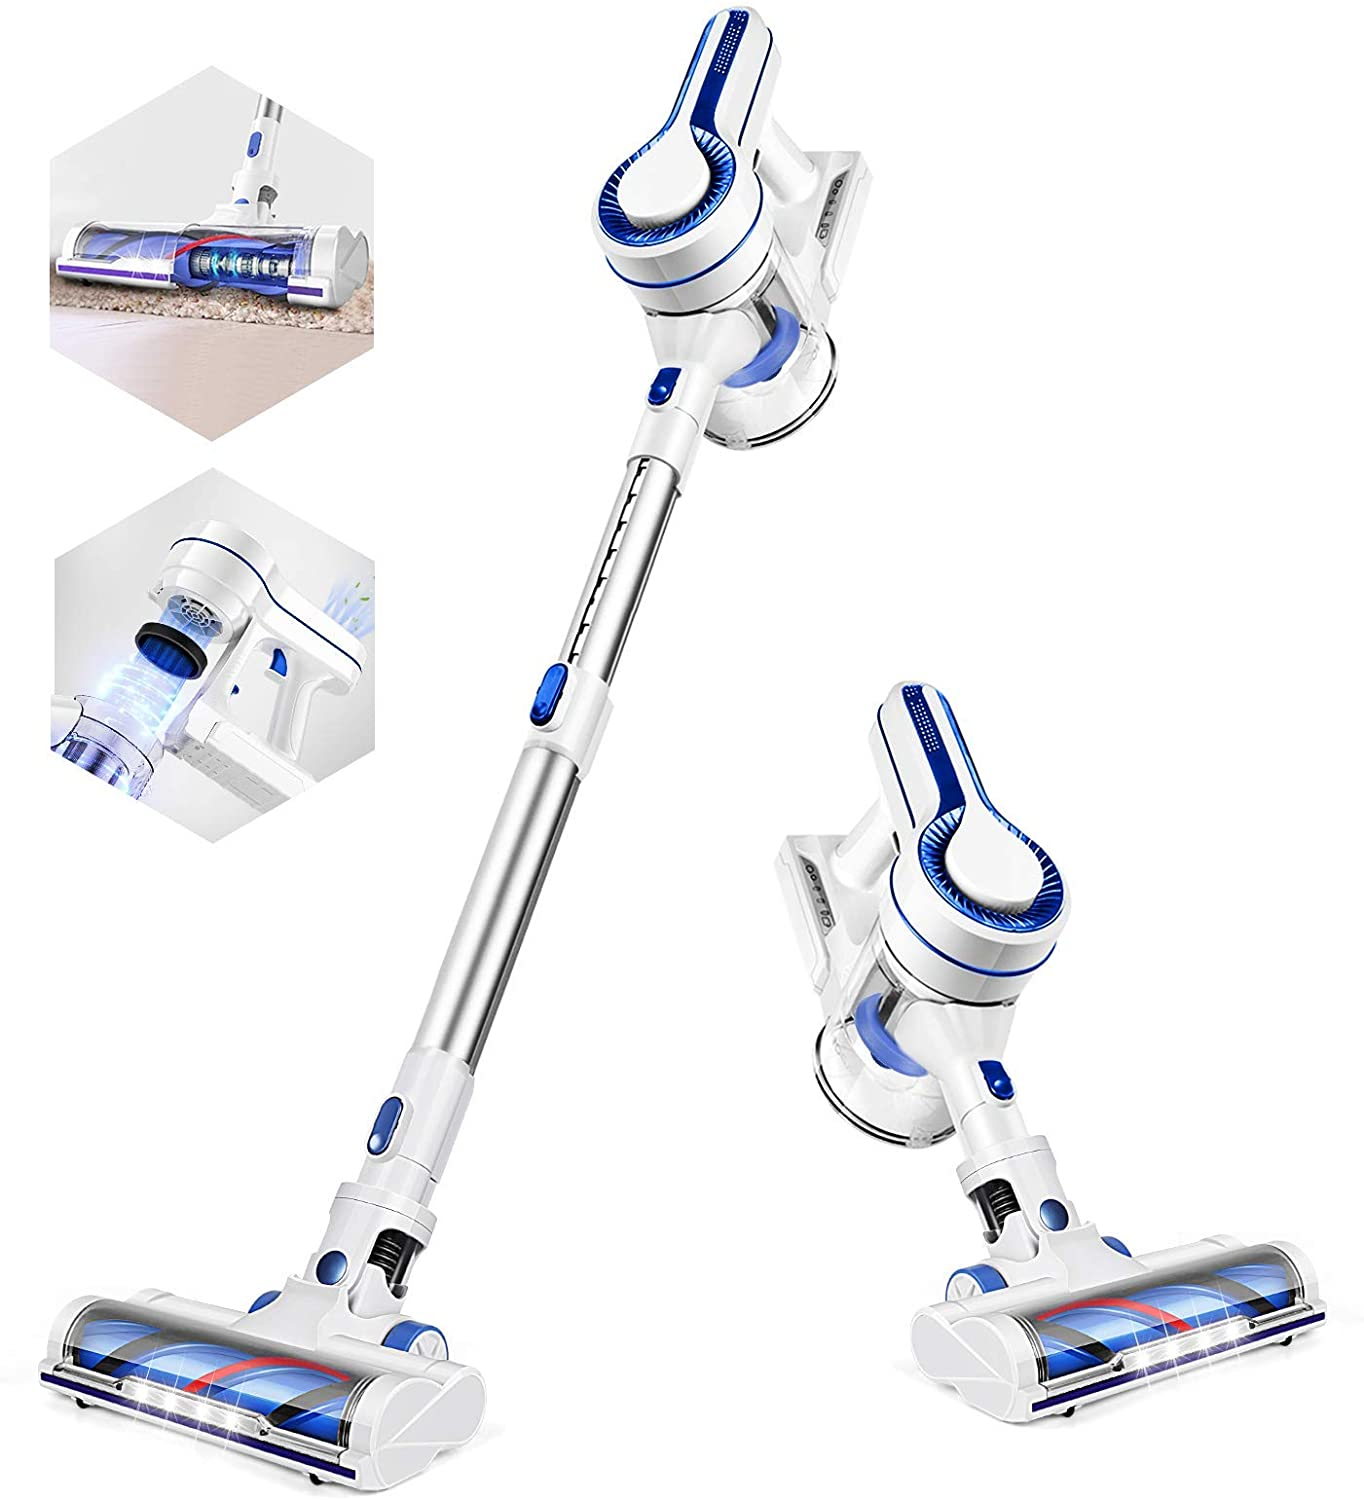 [US Direct] APOSEN Cordless Vacuum Cleaner, Upgraded Powerful Suction 4 in 1 Stick Vacuum Cleaner 35min-Running Detachable Battery, 1.2L Large-Capacity Dust Cup-H120